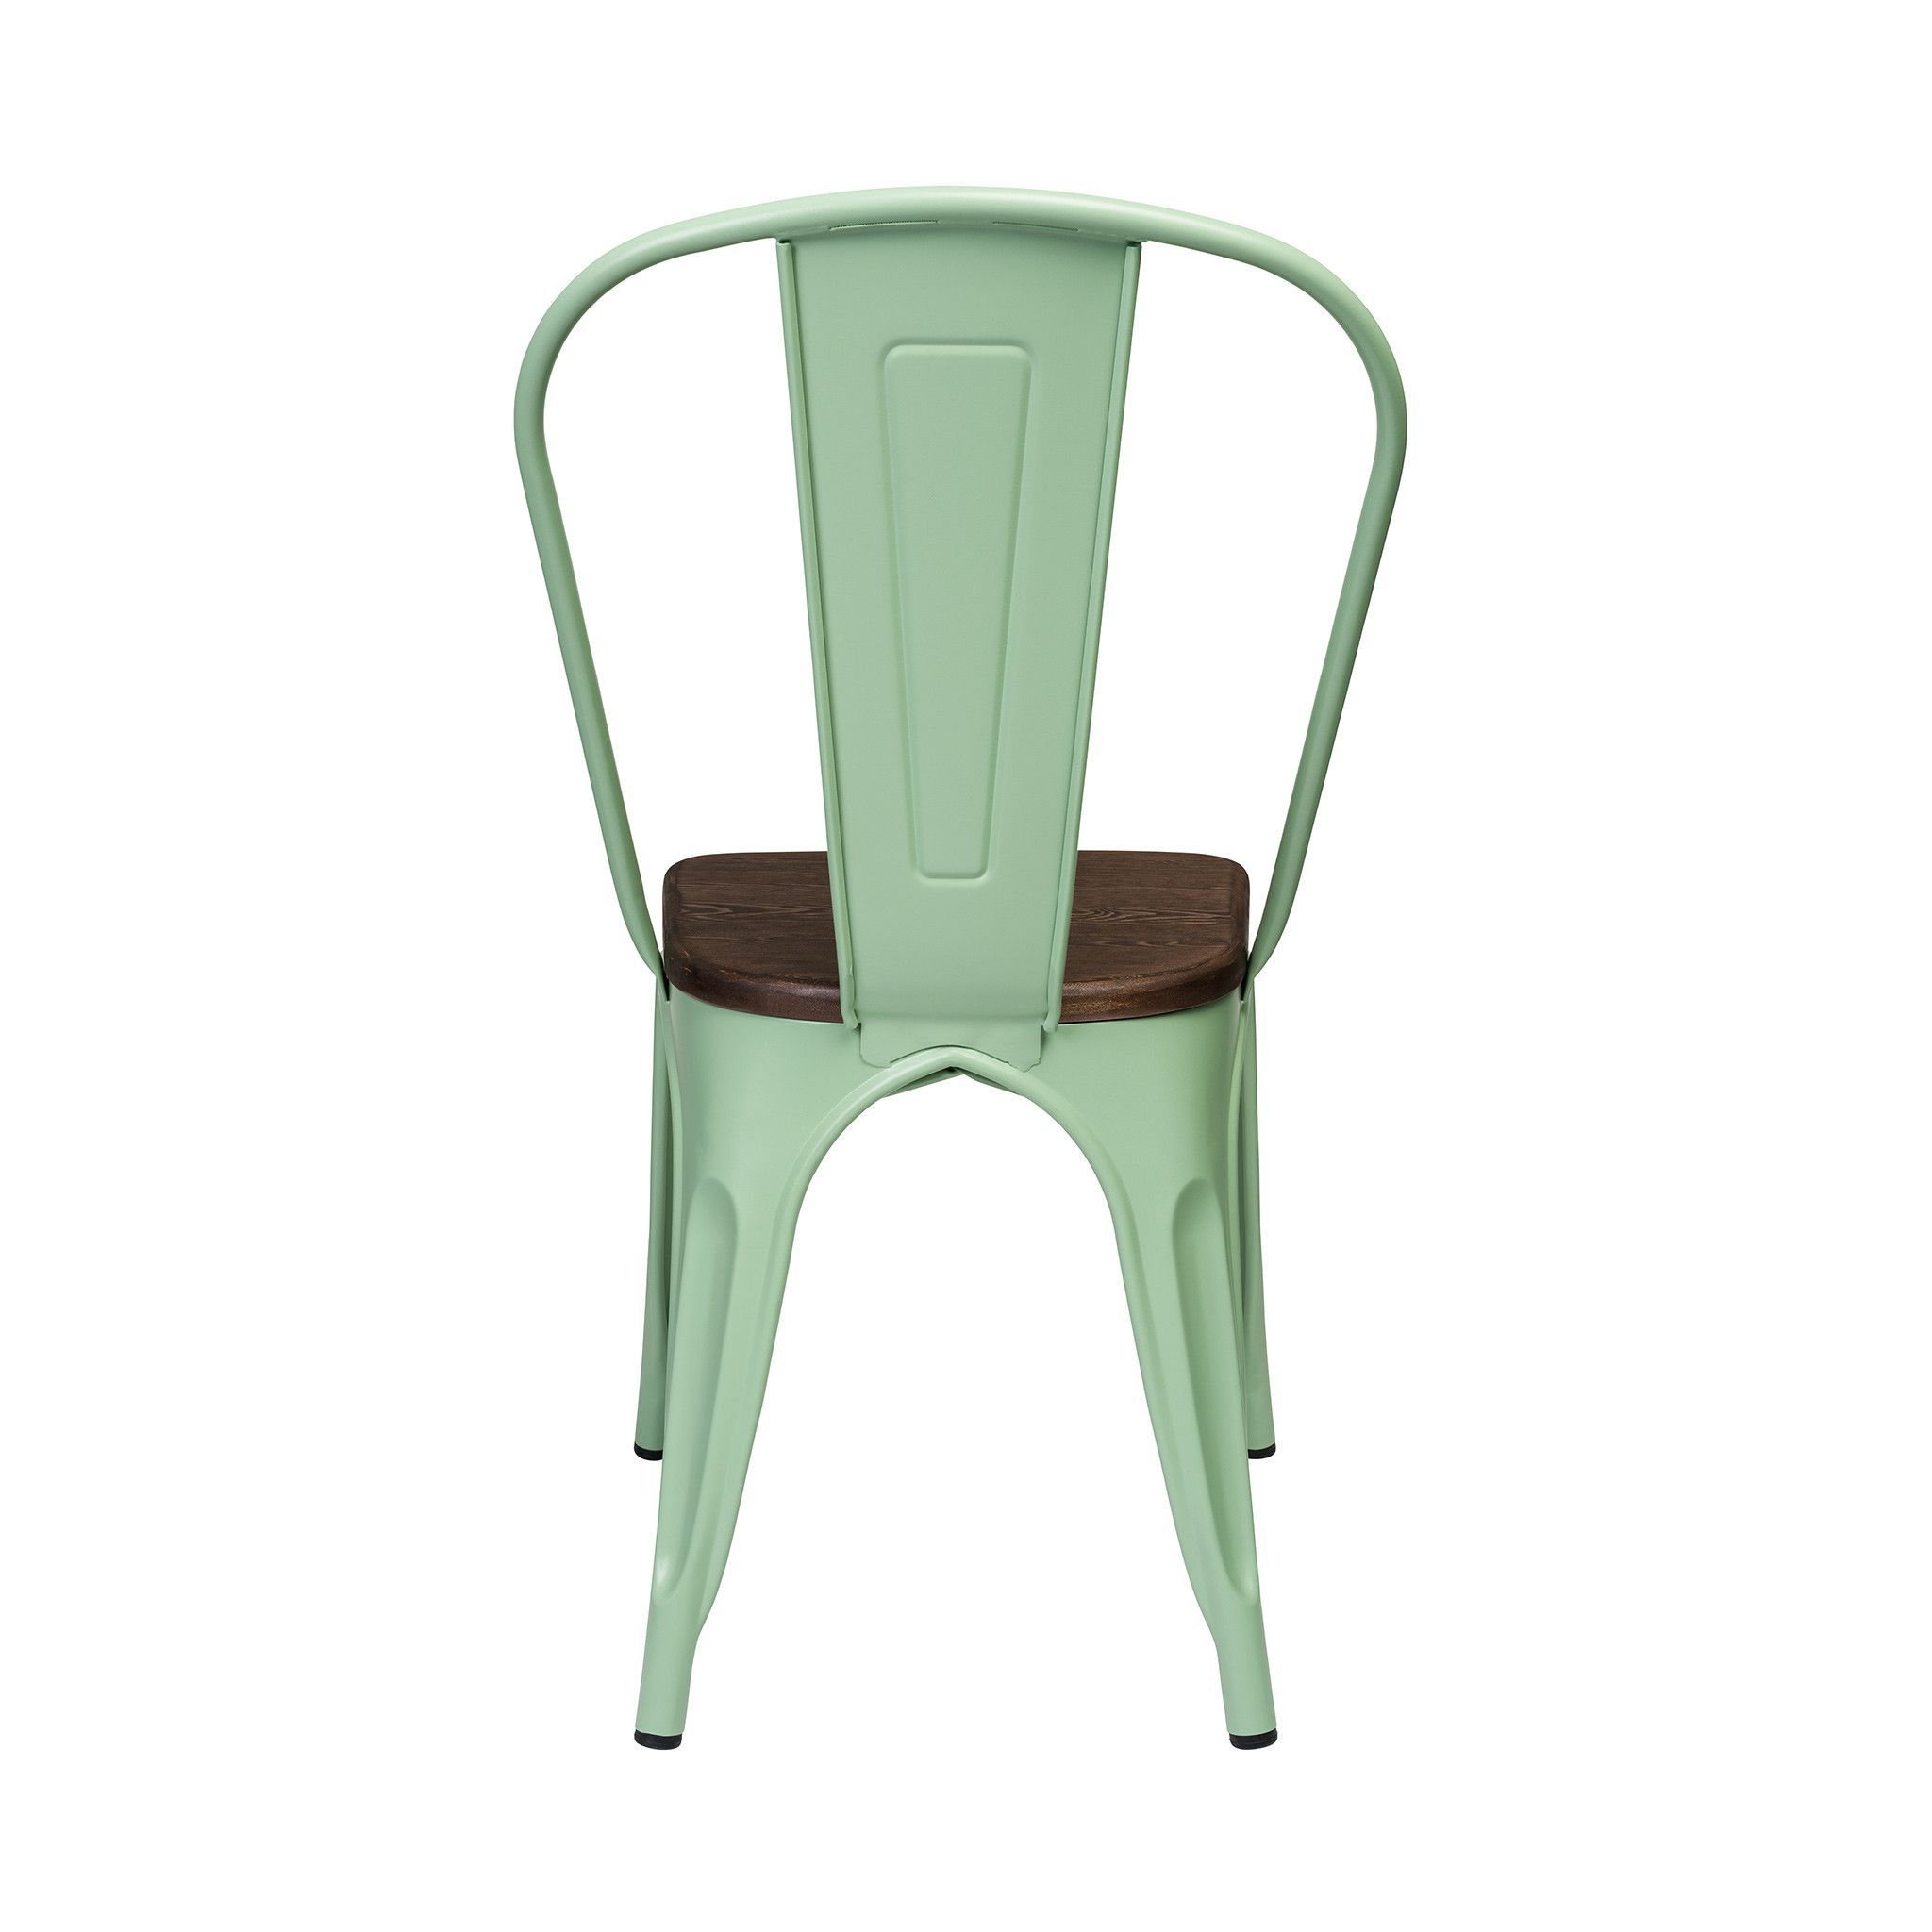 chair xavier sheet chairs previous pauchard blue in of next steel tolix set